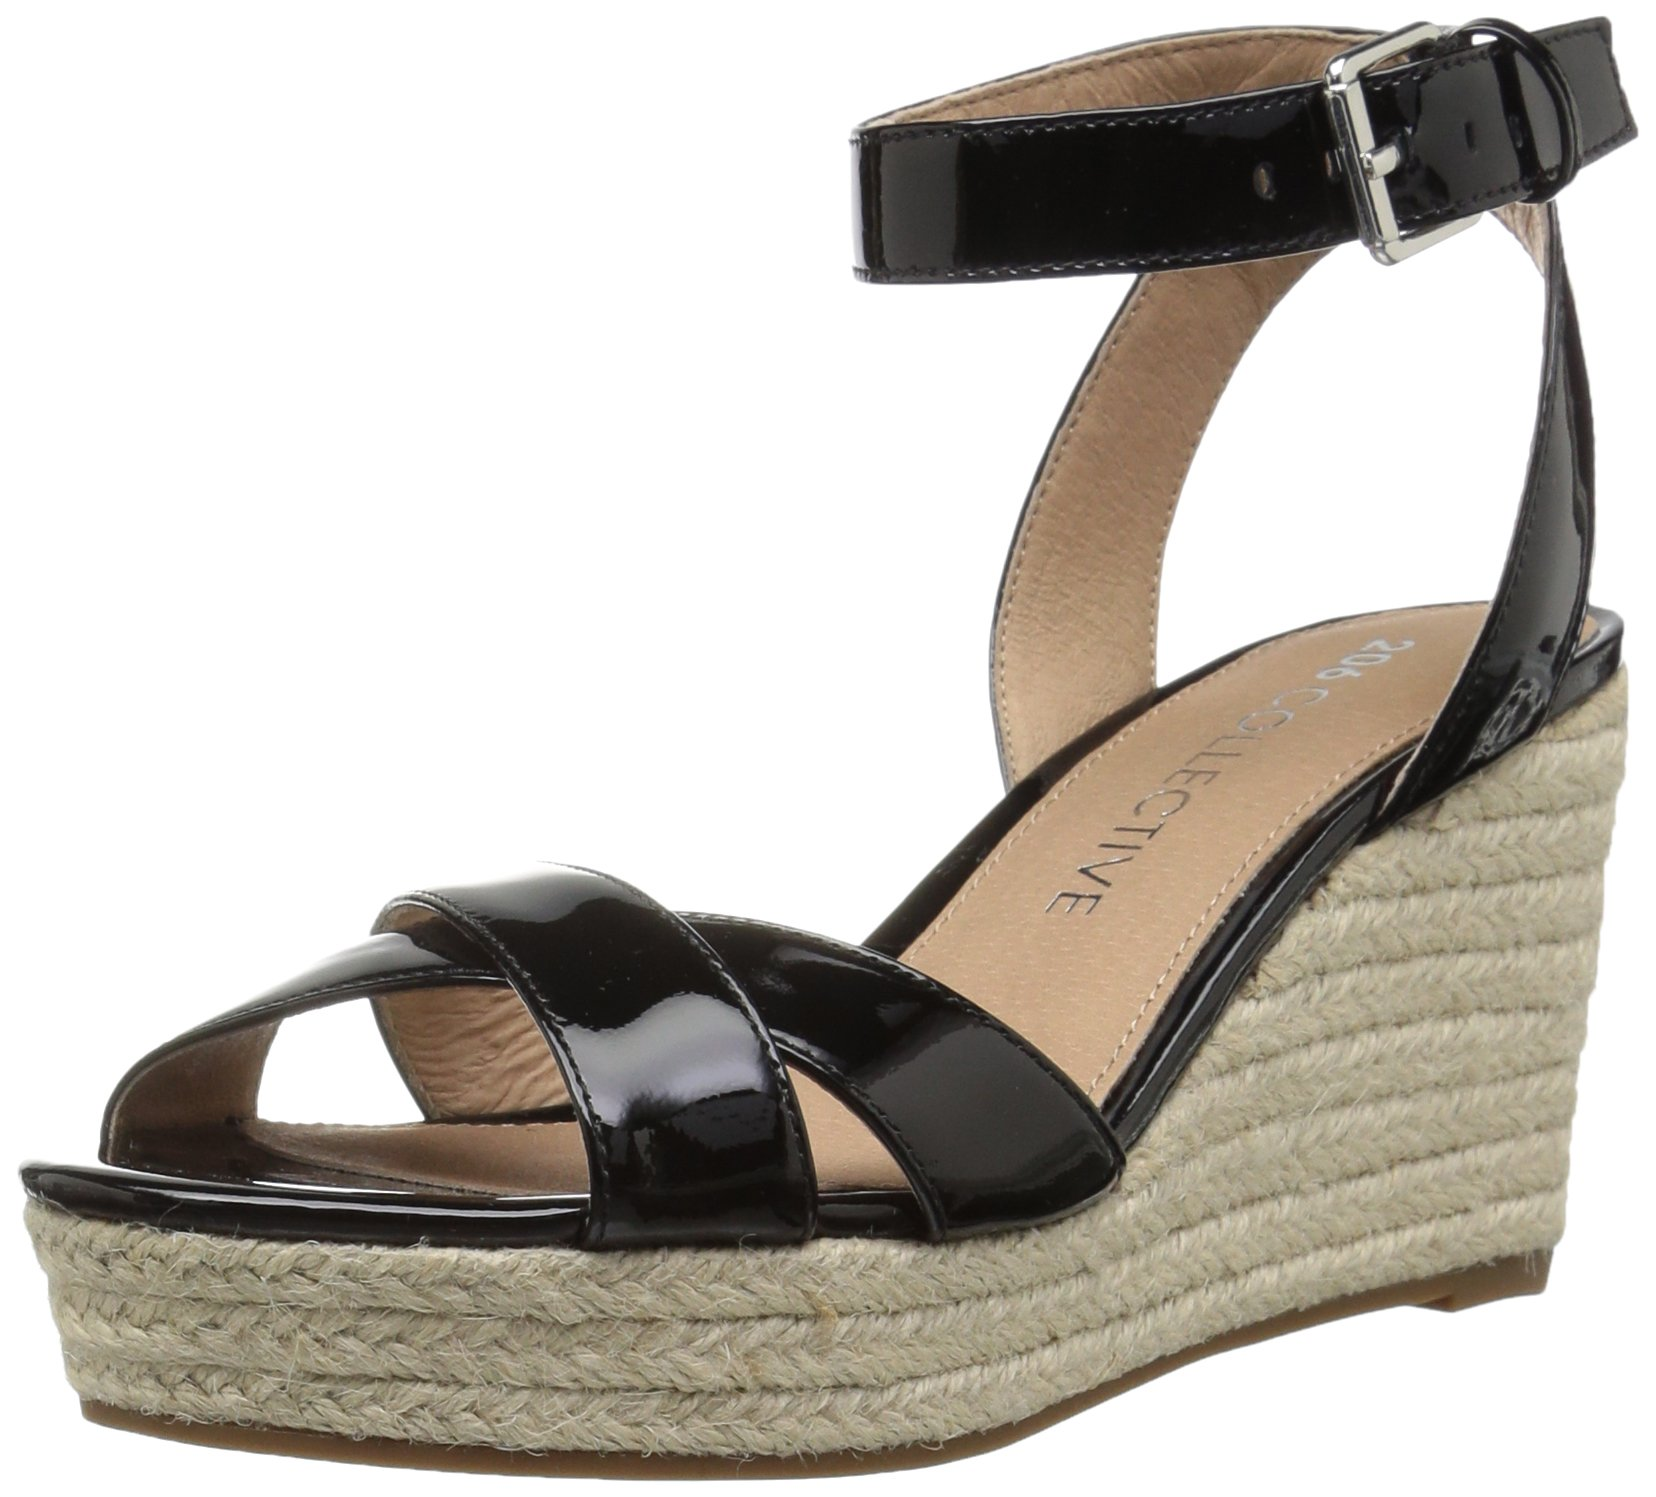 2170c4c84b5 206 Collective Women s Campbell Espadrille Dress Wedge-High Sandal ...